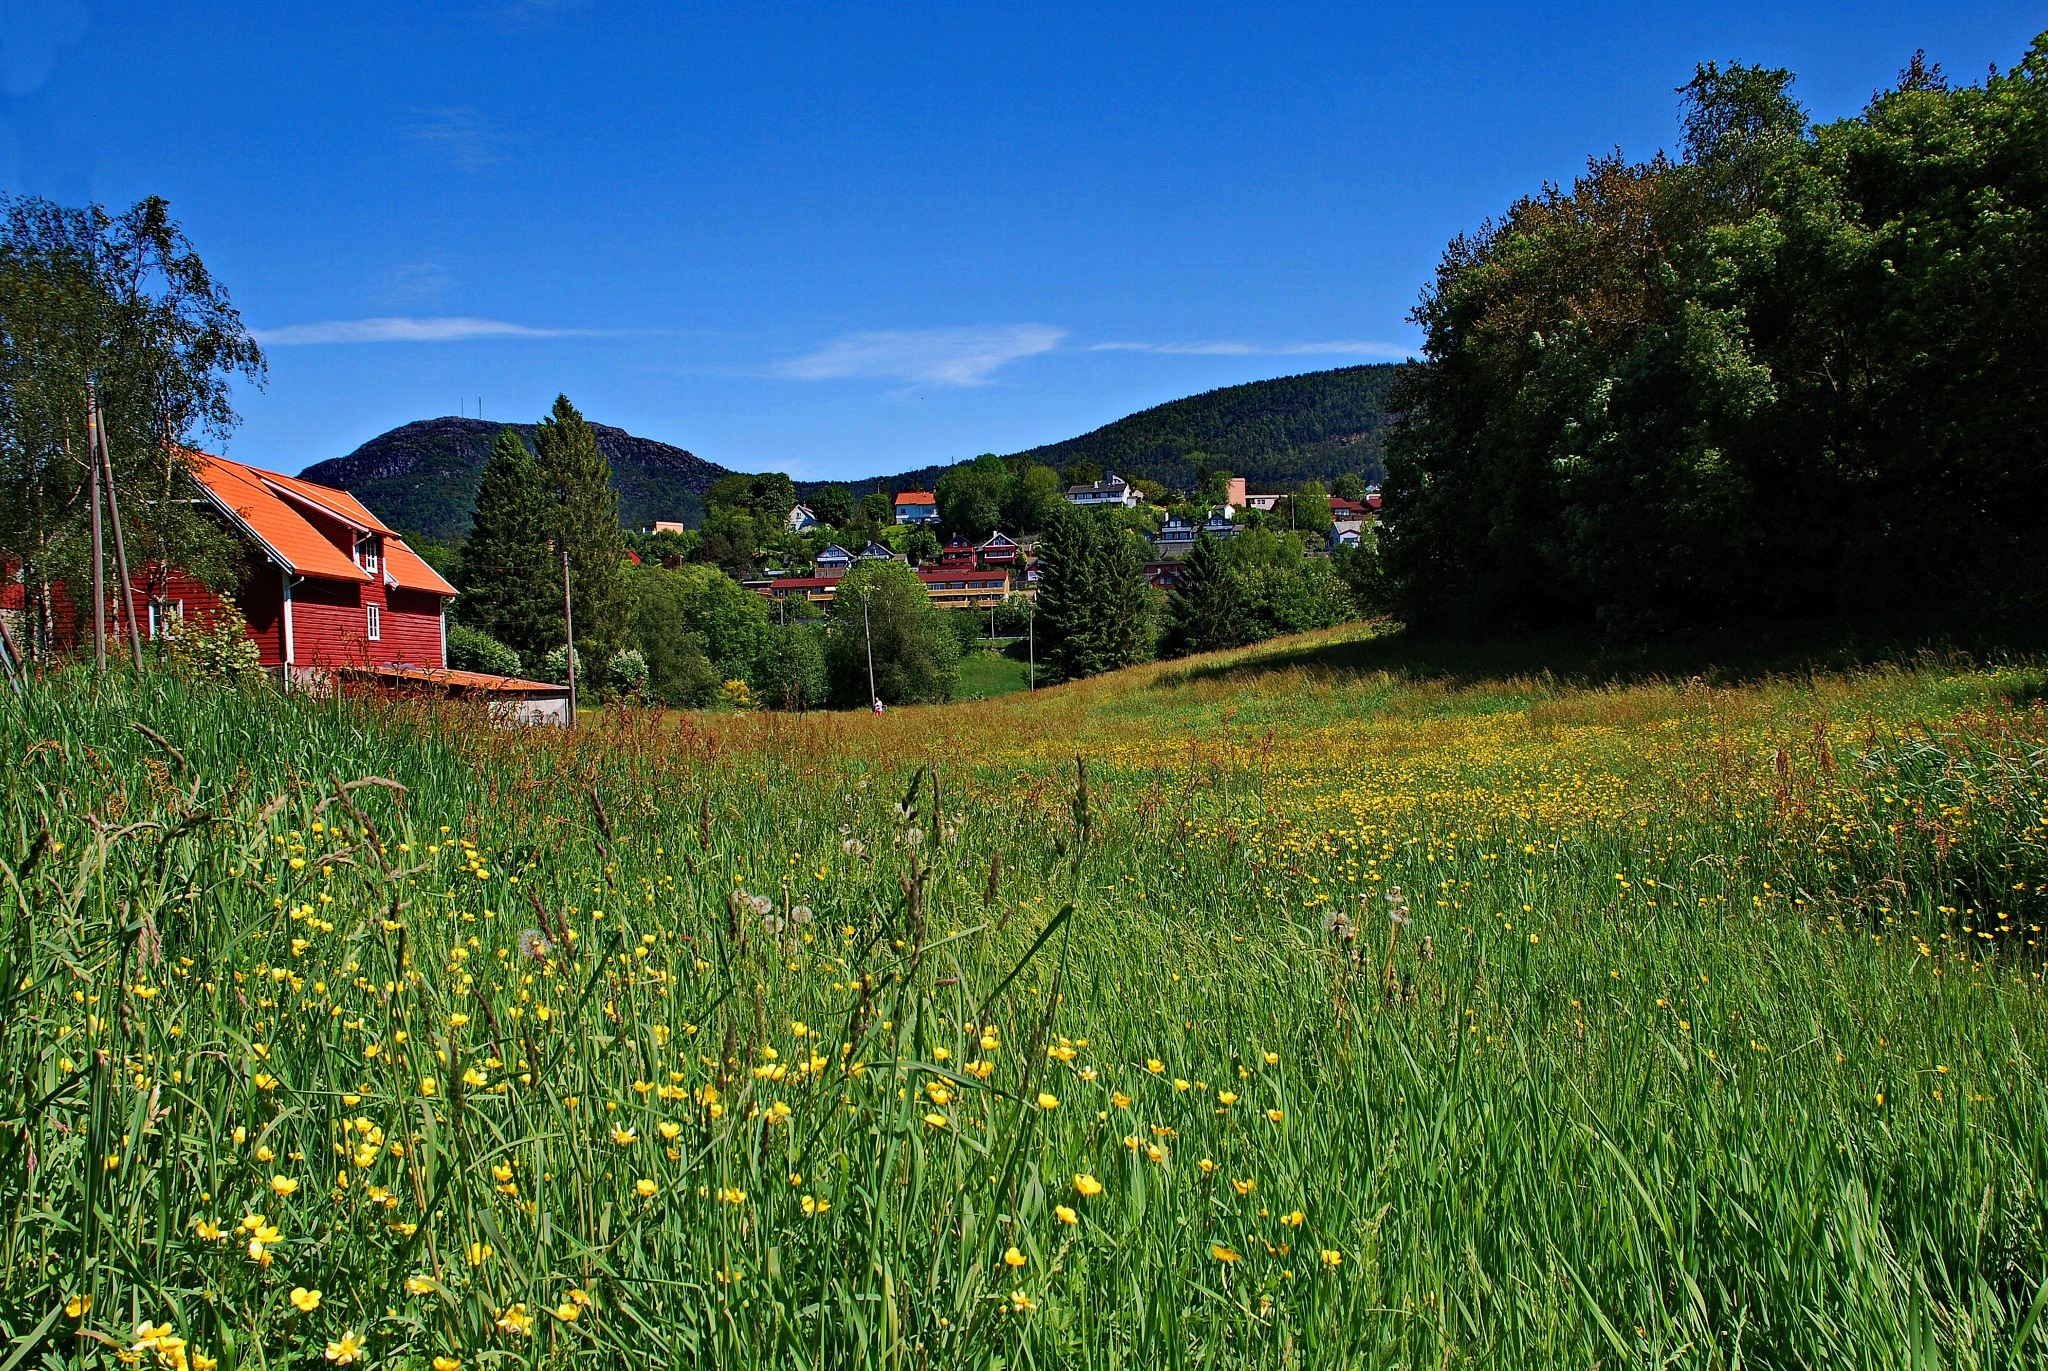 Summer meadow by Per Molvik